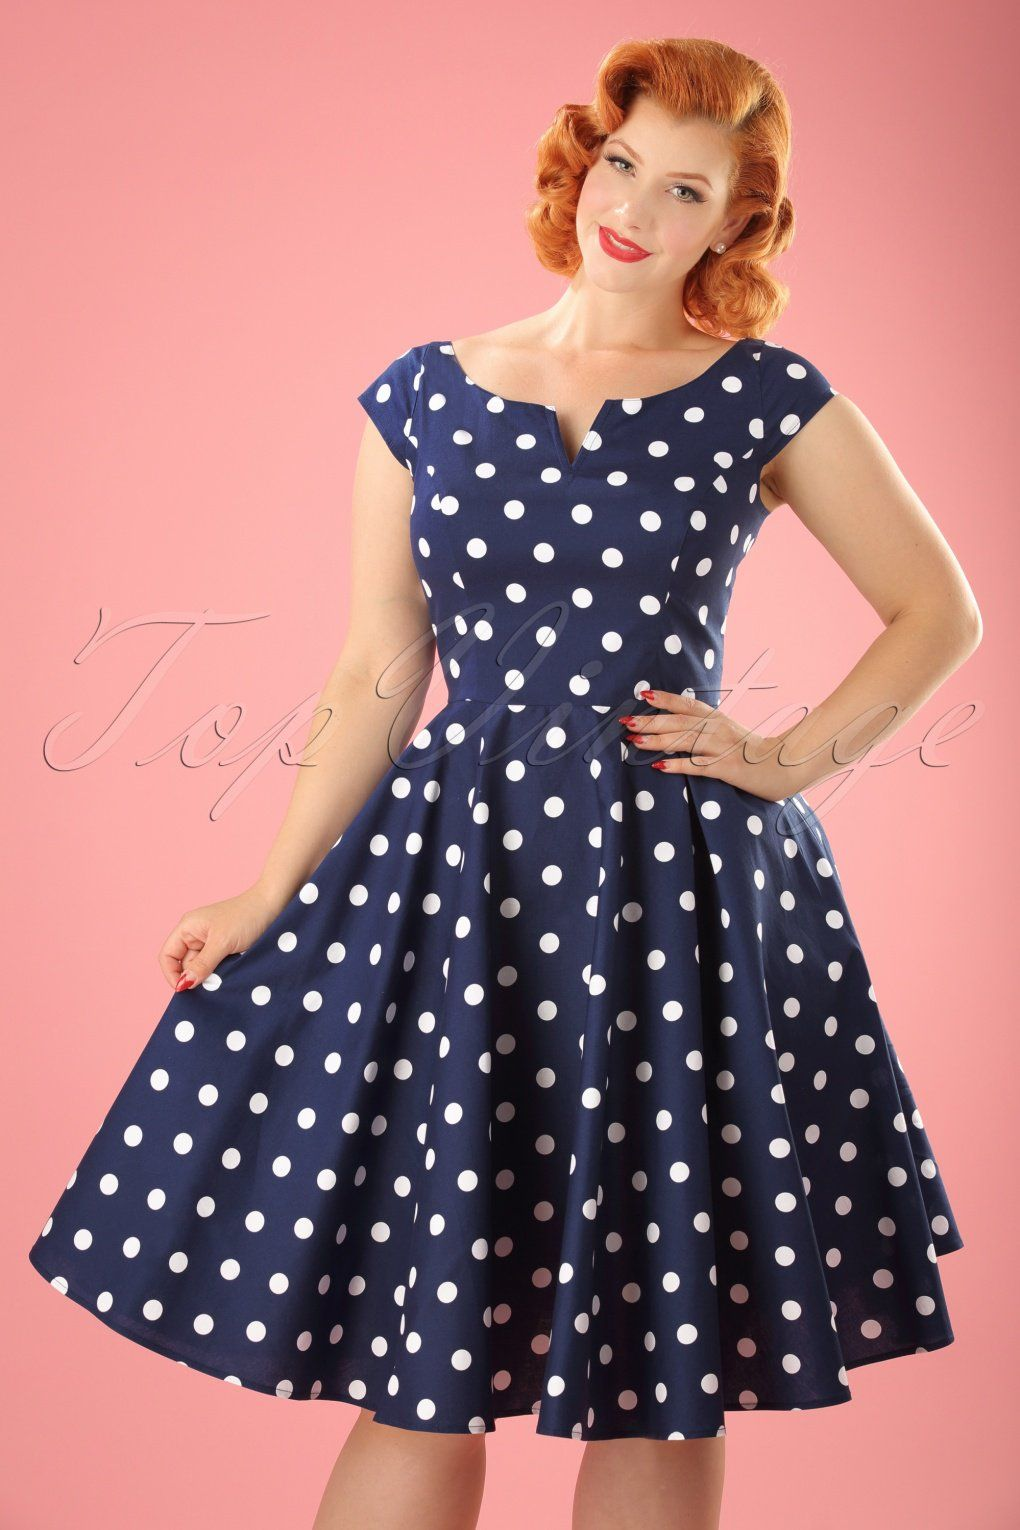 50s Nicky Polkadot Swing Dress in Navy and White